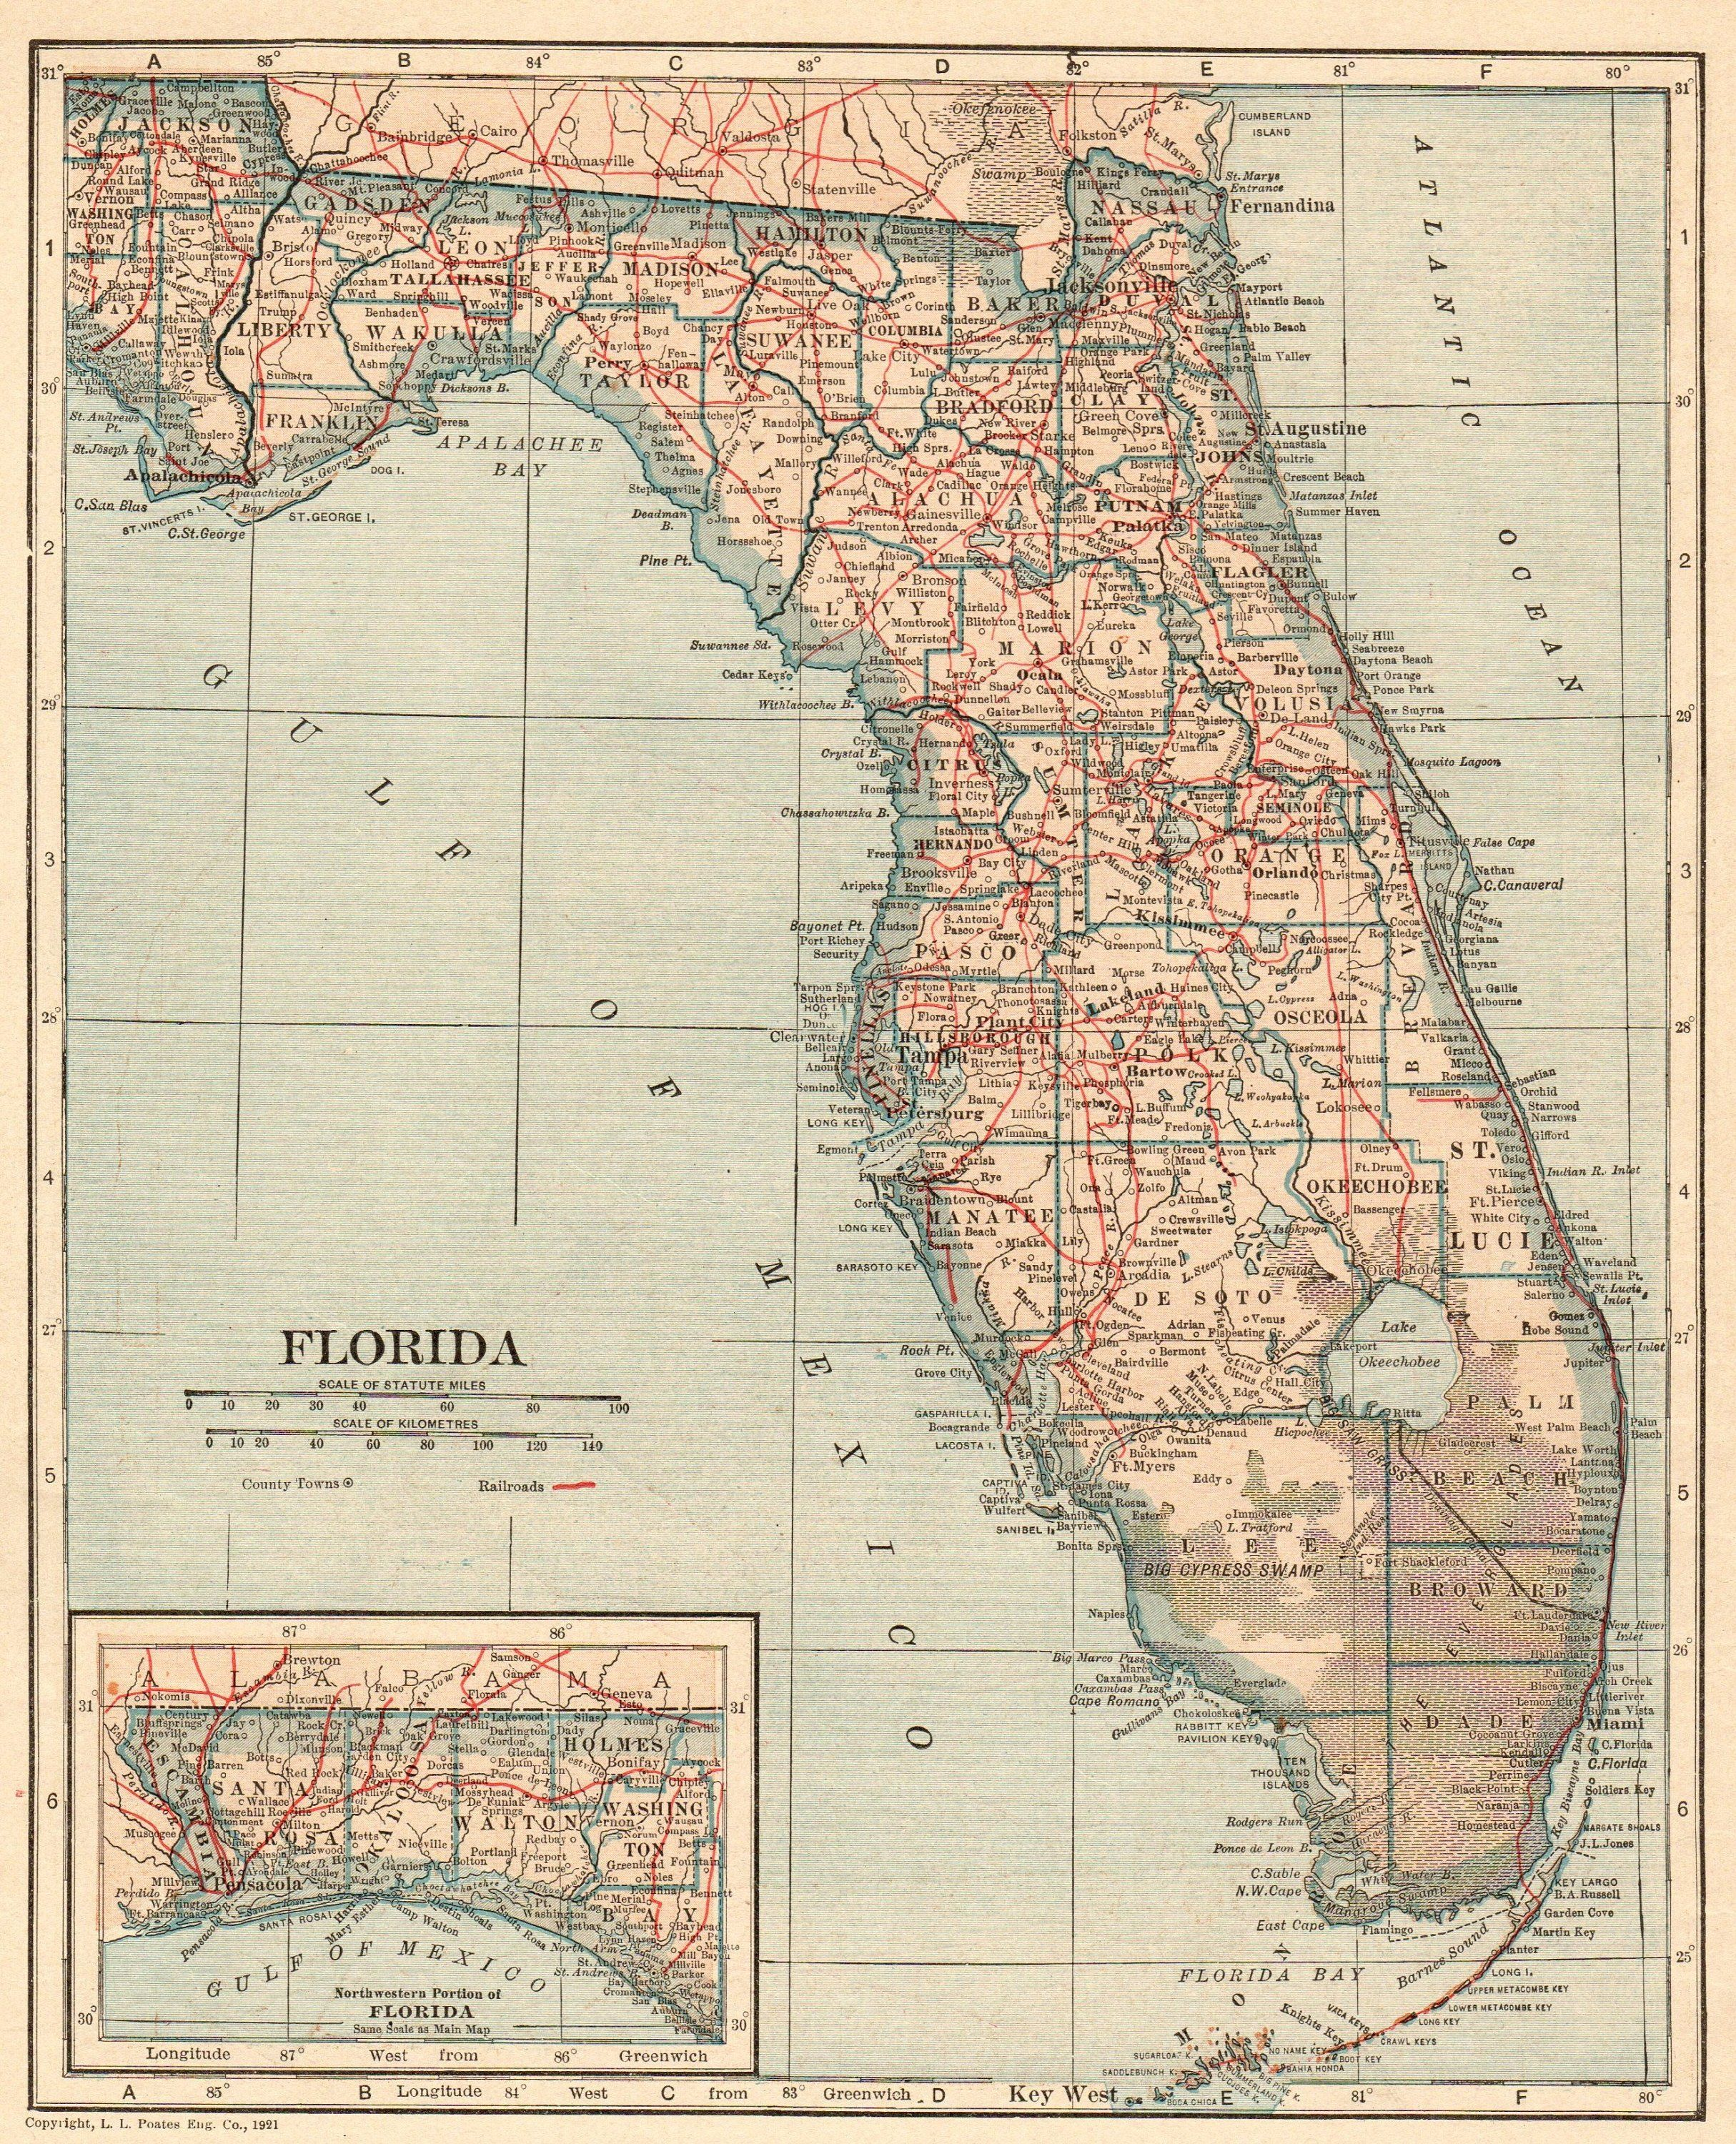 Map State Of Florida.Antique Florida Map 1921 Vintage State Map Of Florida Gallery Wall